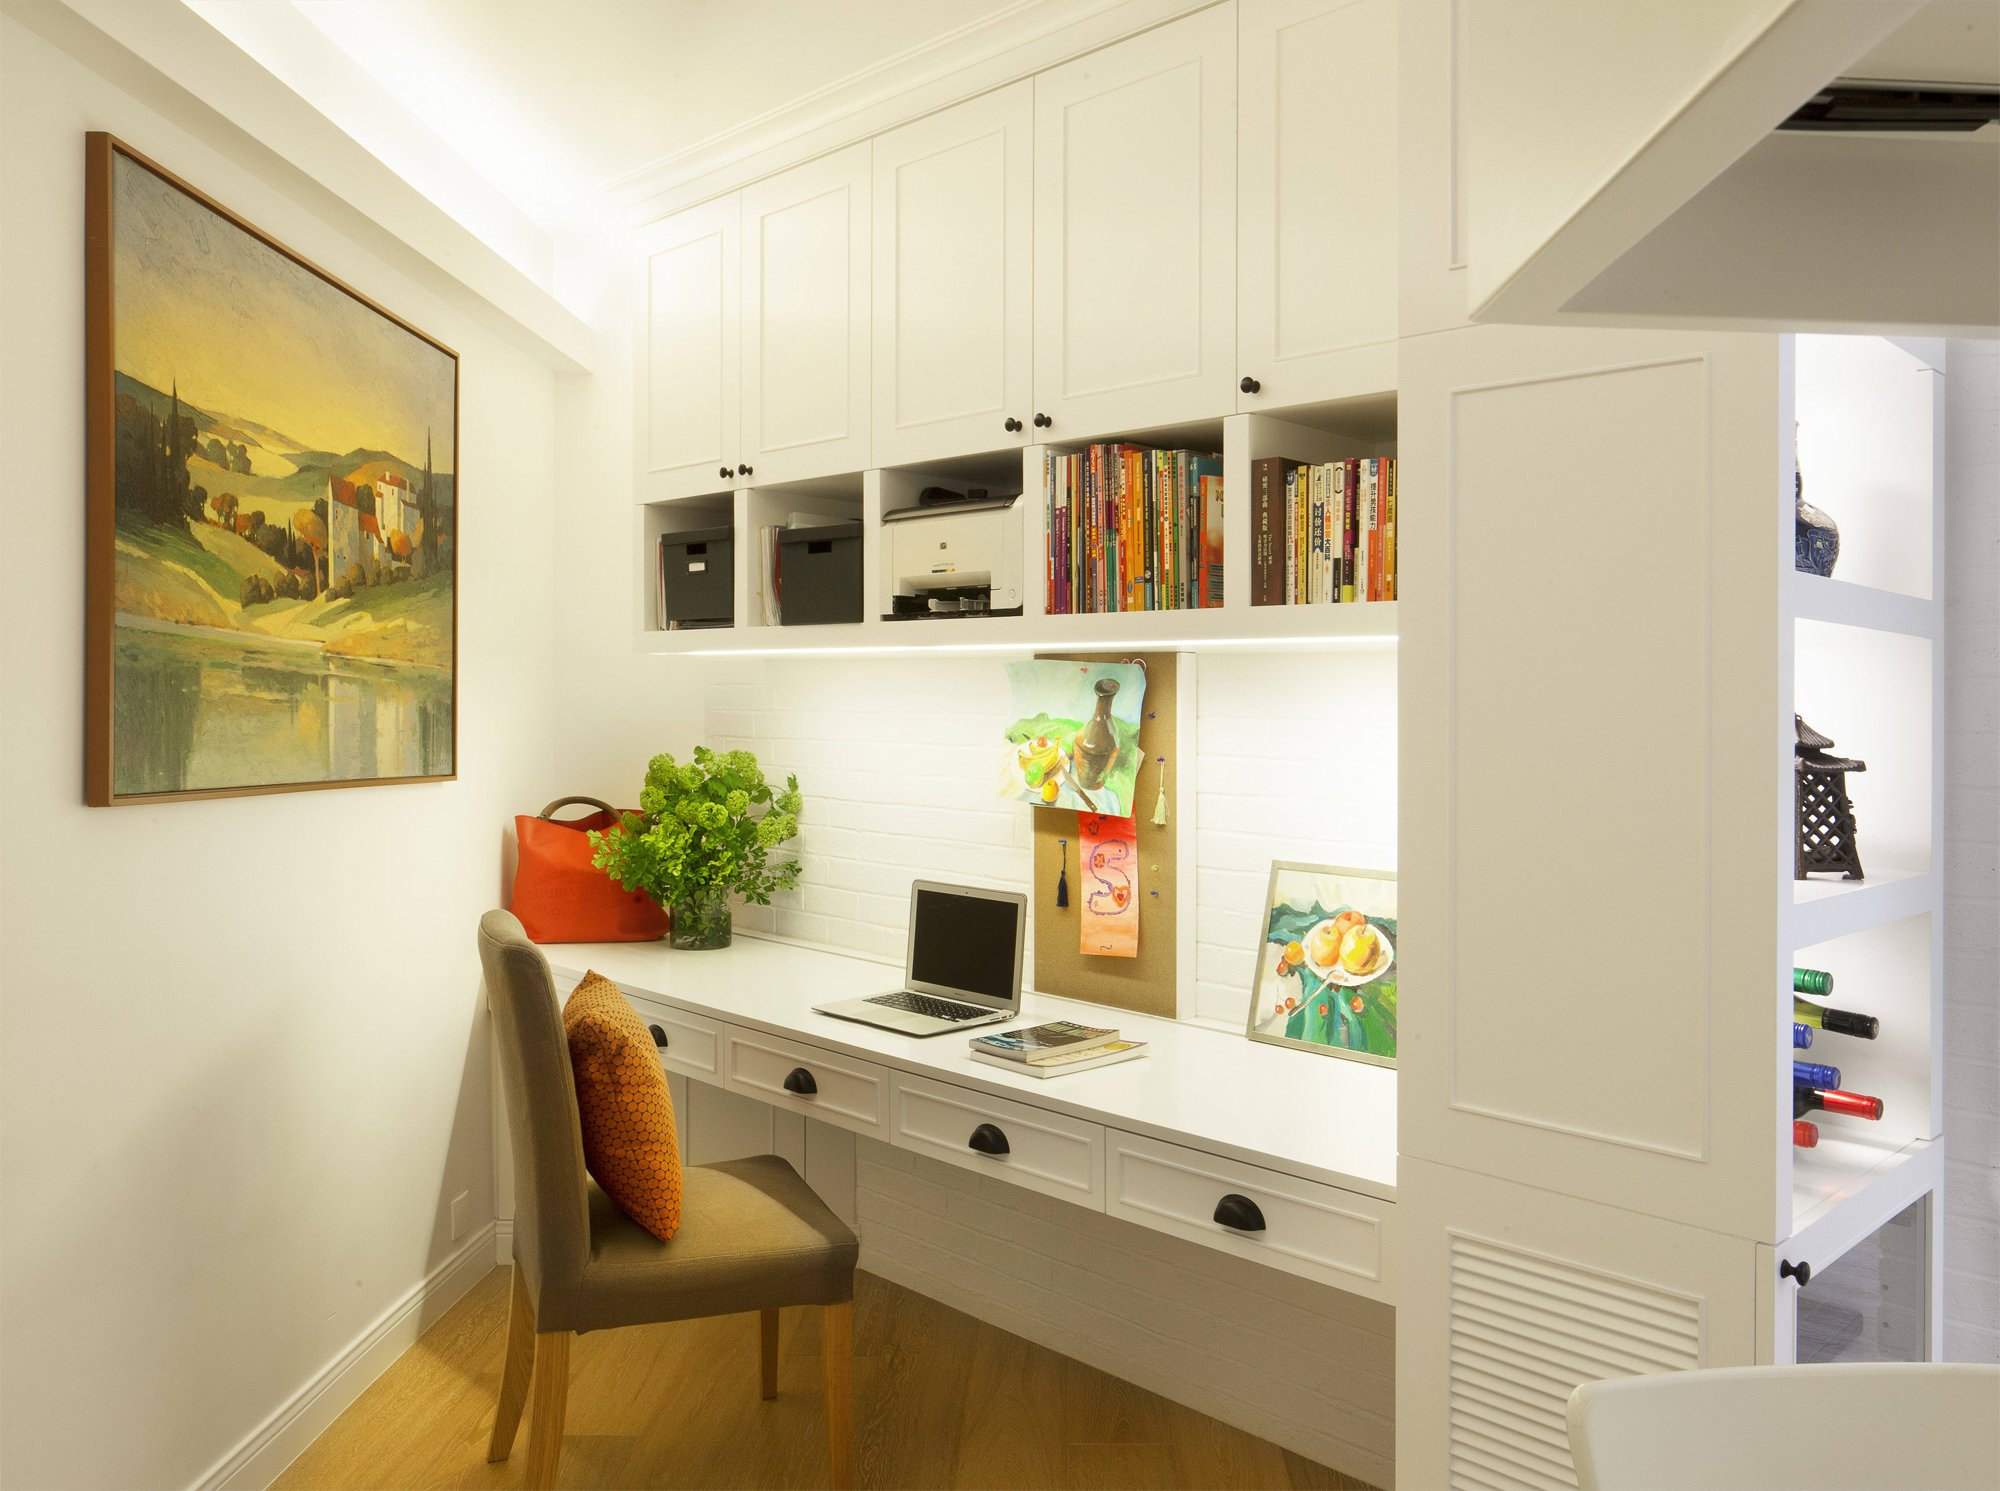 Study The Desk HK17800 Overhead Cupboards HK14600 And Display Case HK11900 Were By CLDW Chair HK990 Artwork Came From Ikea